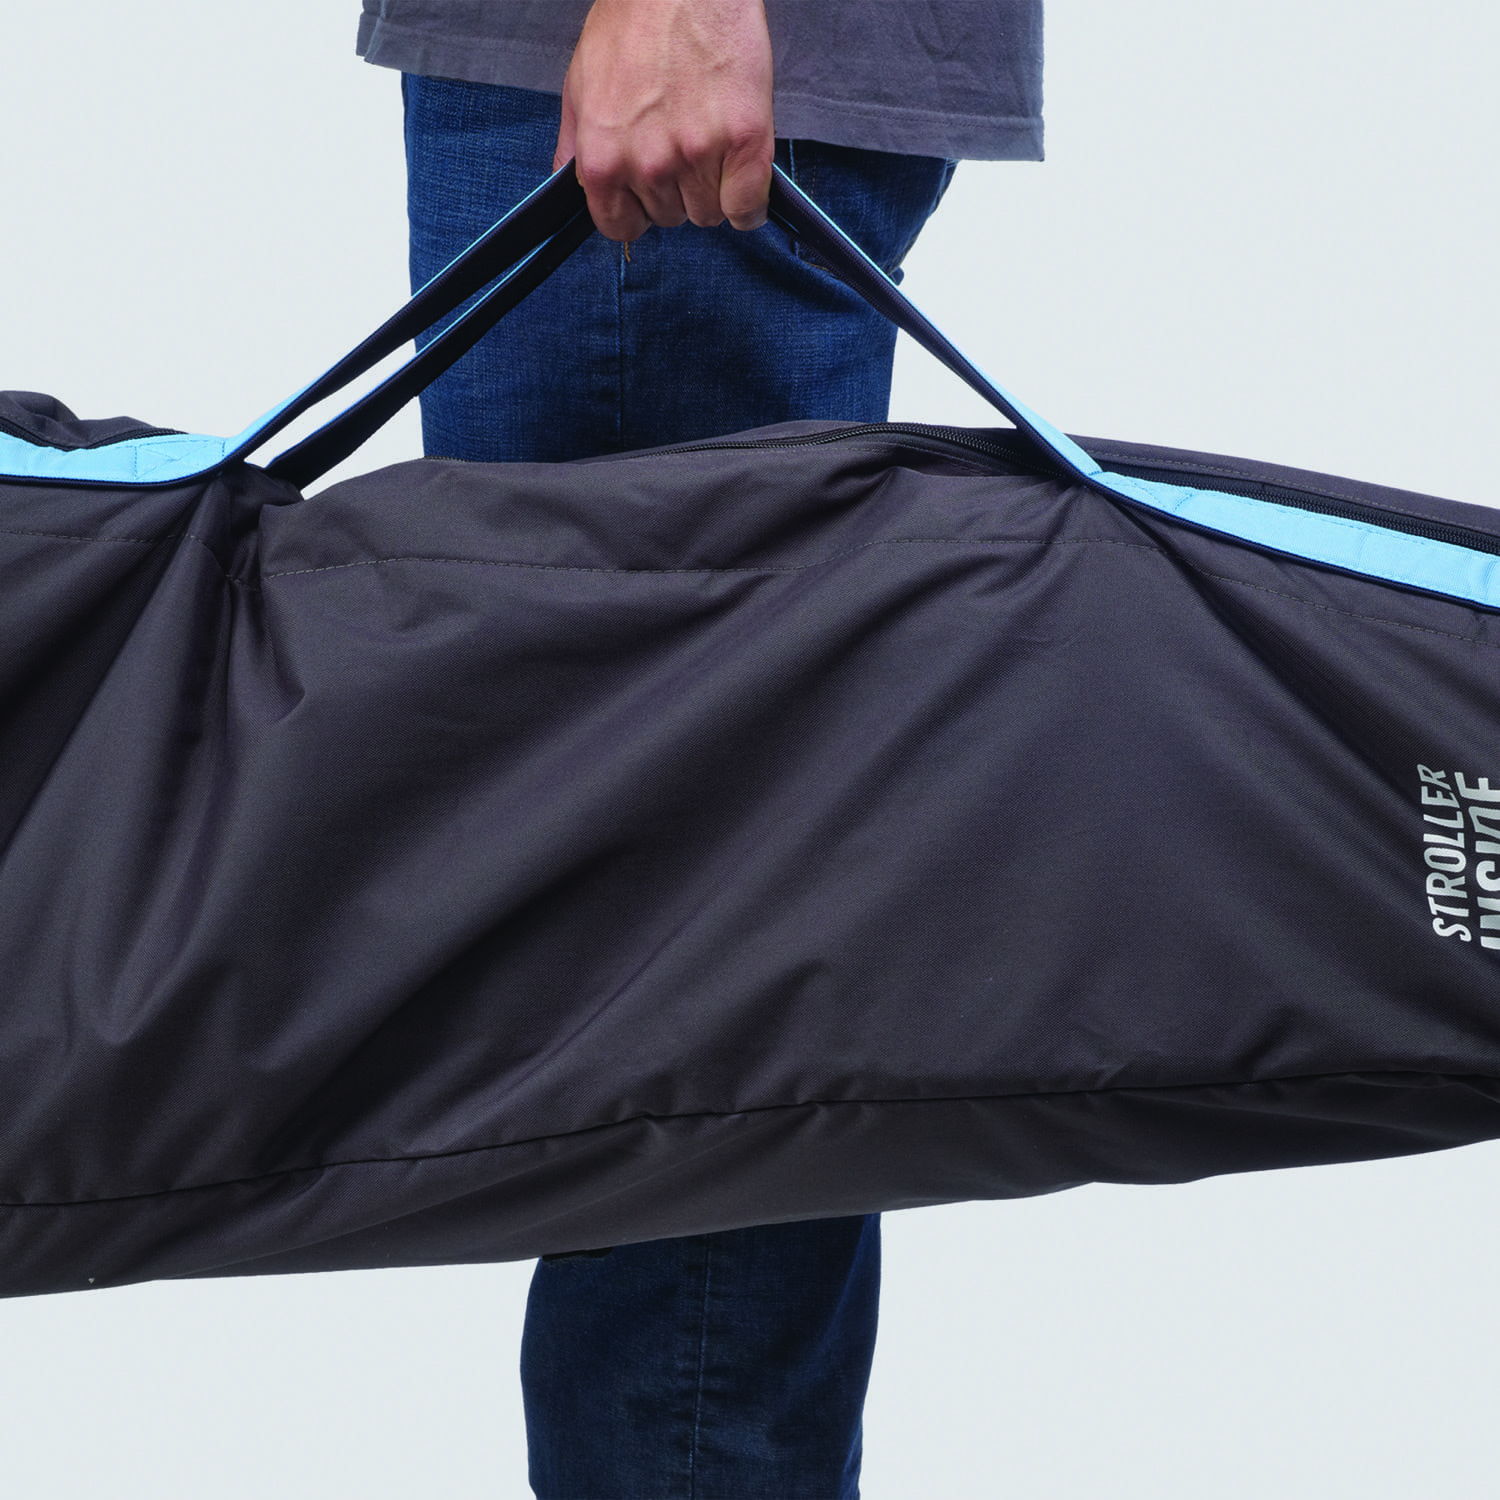 UPPAbaby Travel Bag product image